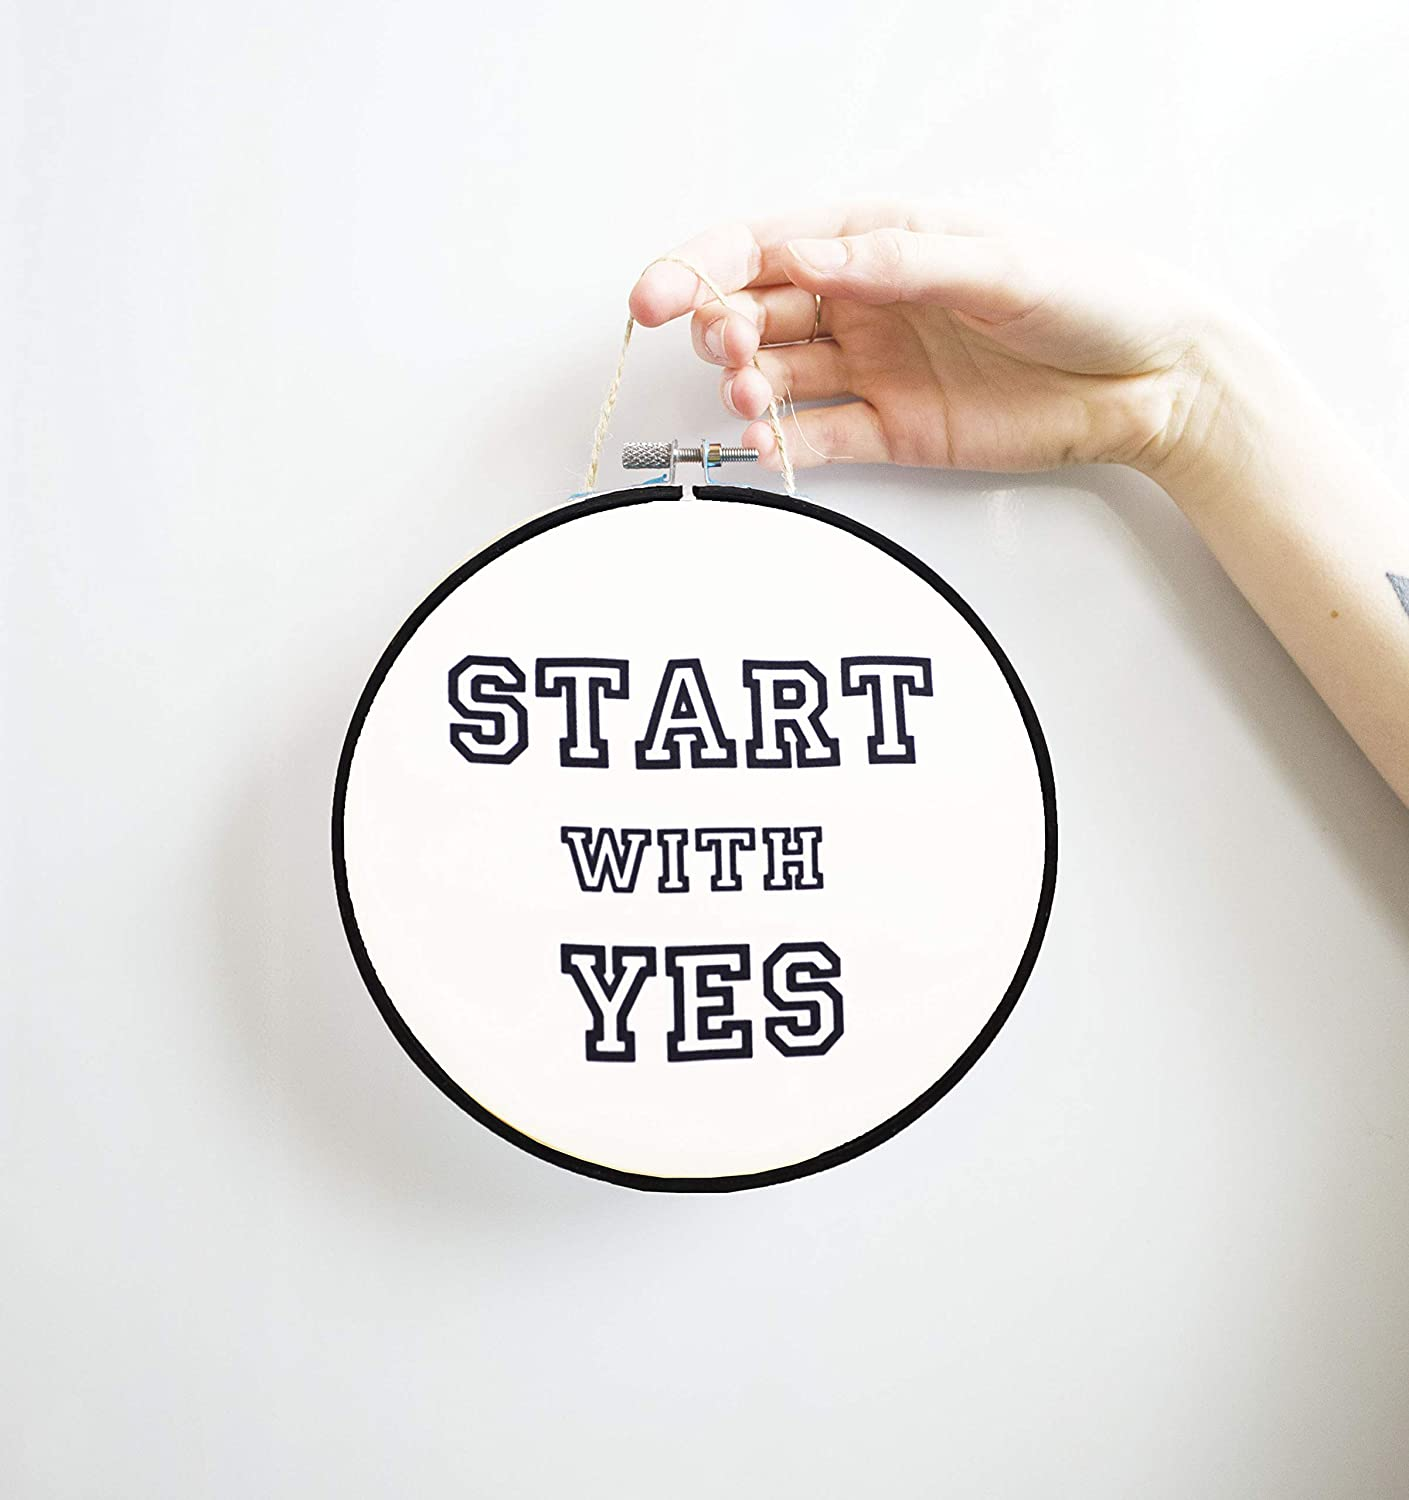 Amazon Com Start With Yes Quotes Hoop Art Motivational Poster Tumblr Room Decor Aesthetic Gift Inspirational Sign Canvas Wall Handmade